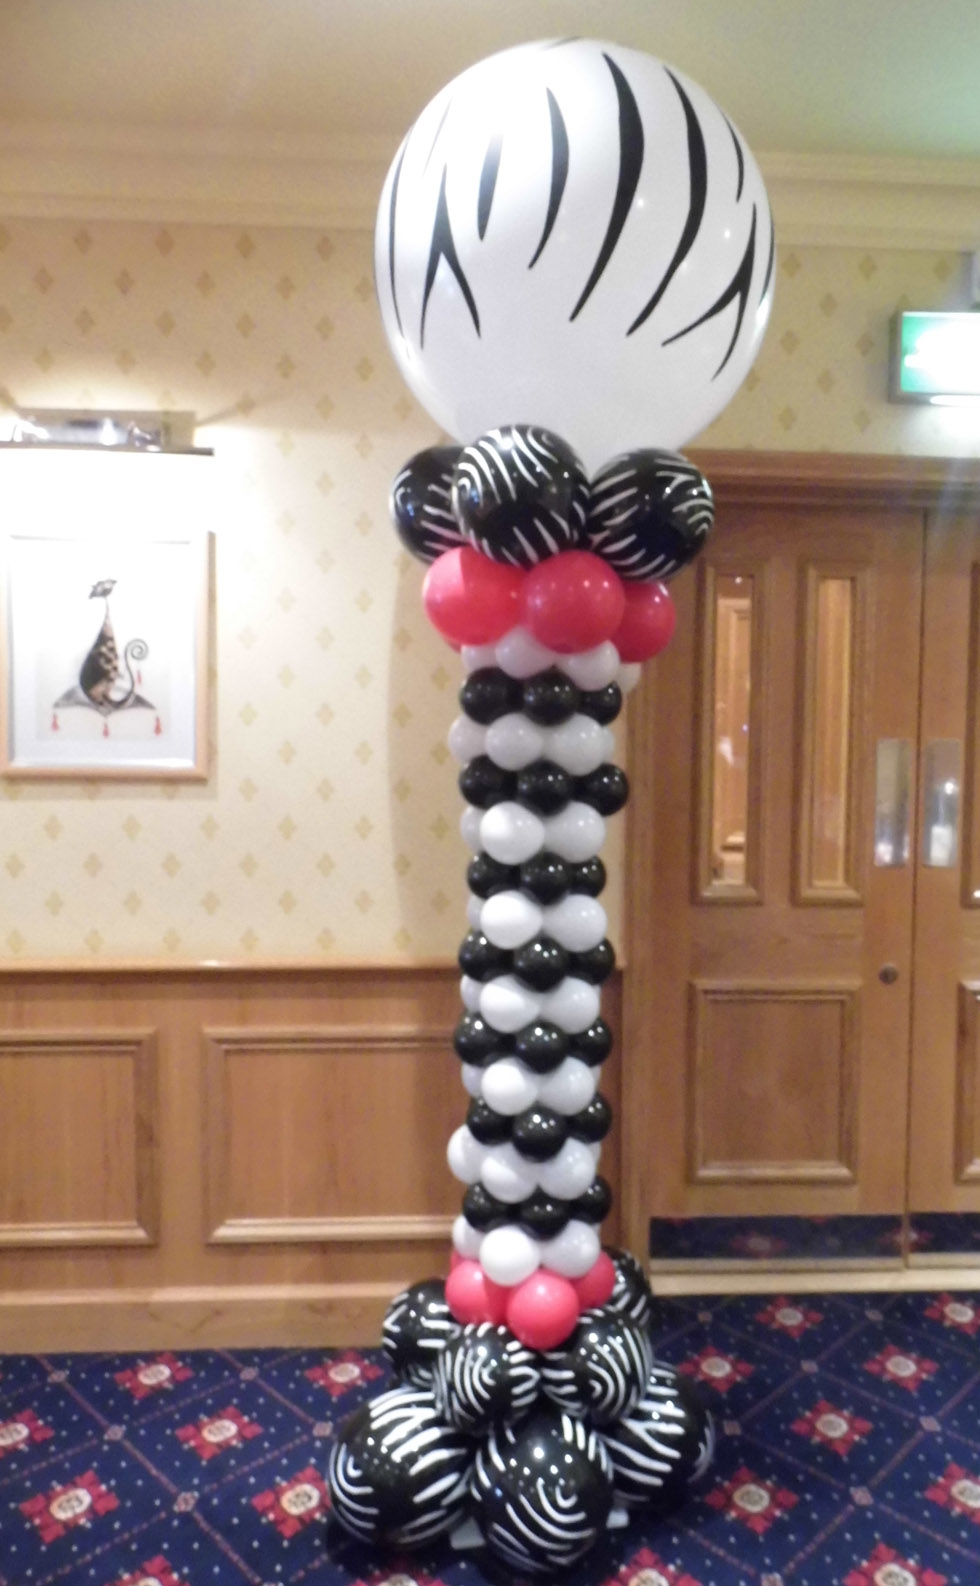 Event Balloon Tower